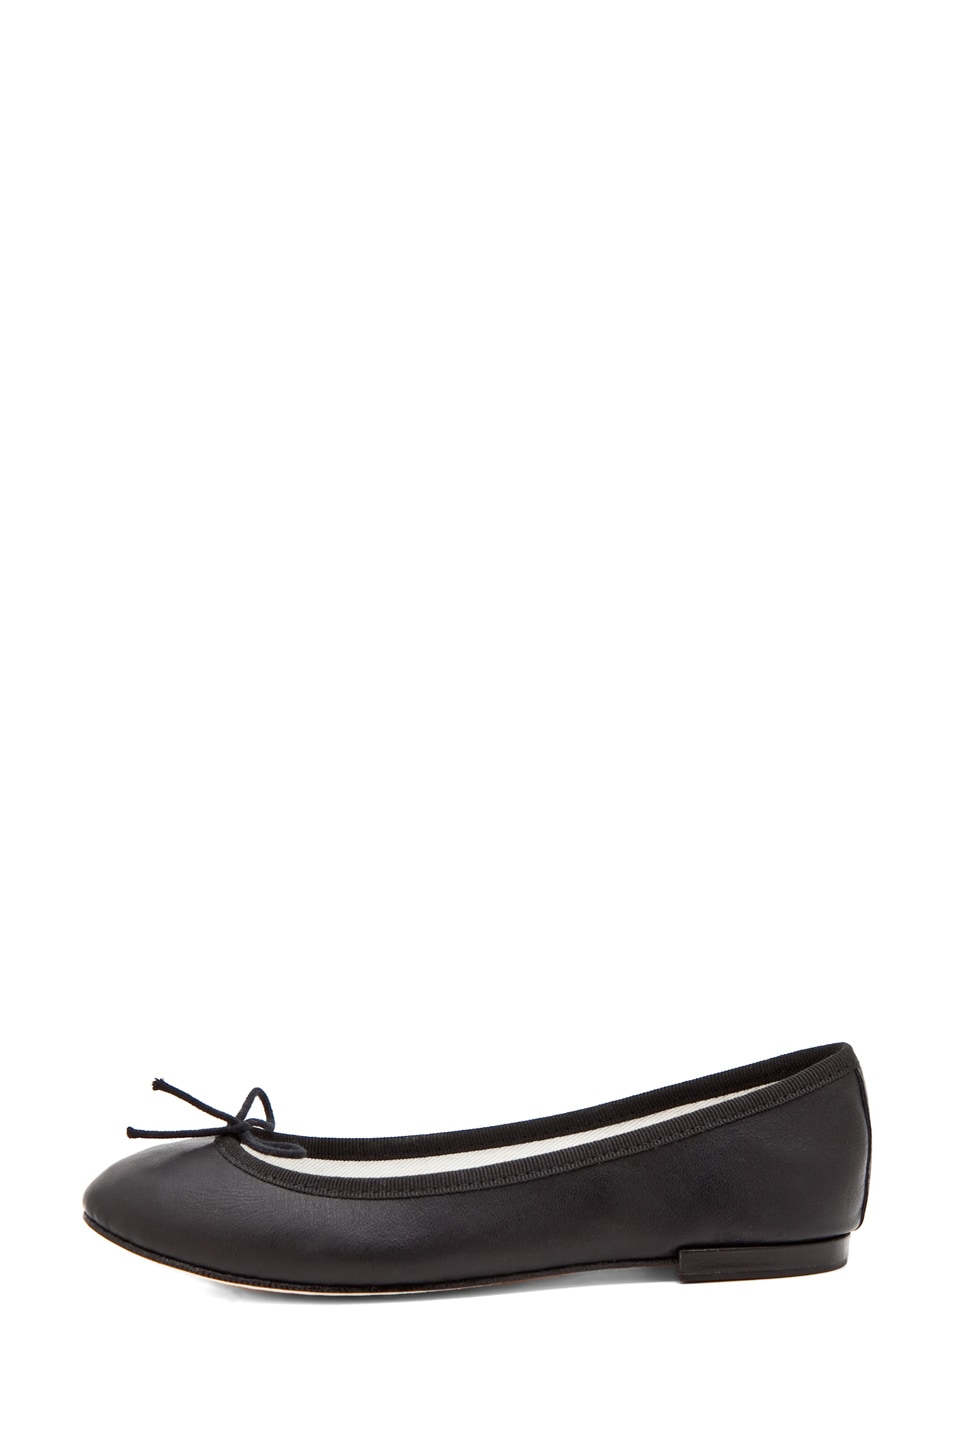 Image 1 of Repetto Calfskin Leather Flats in Black